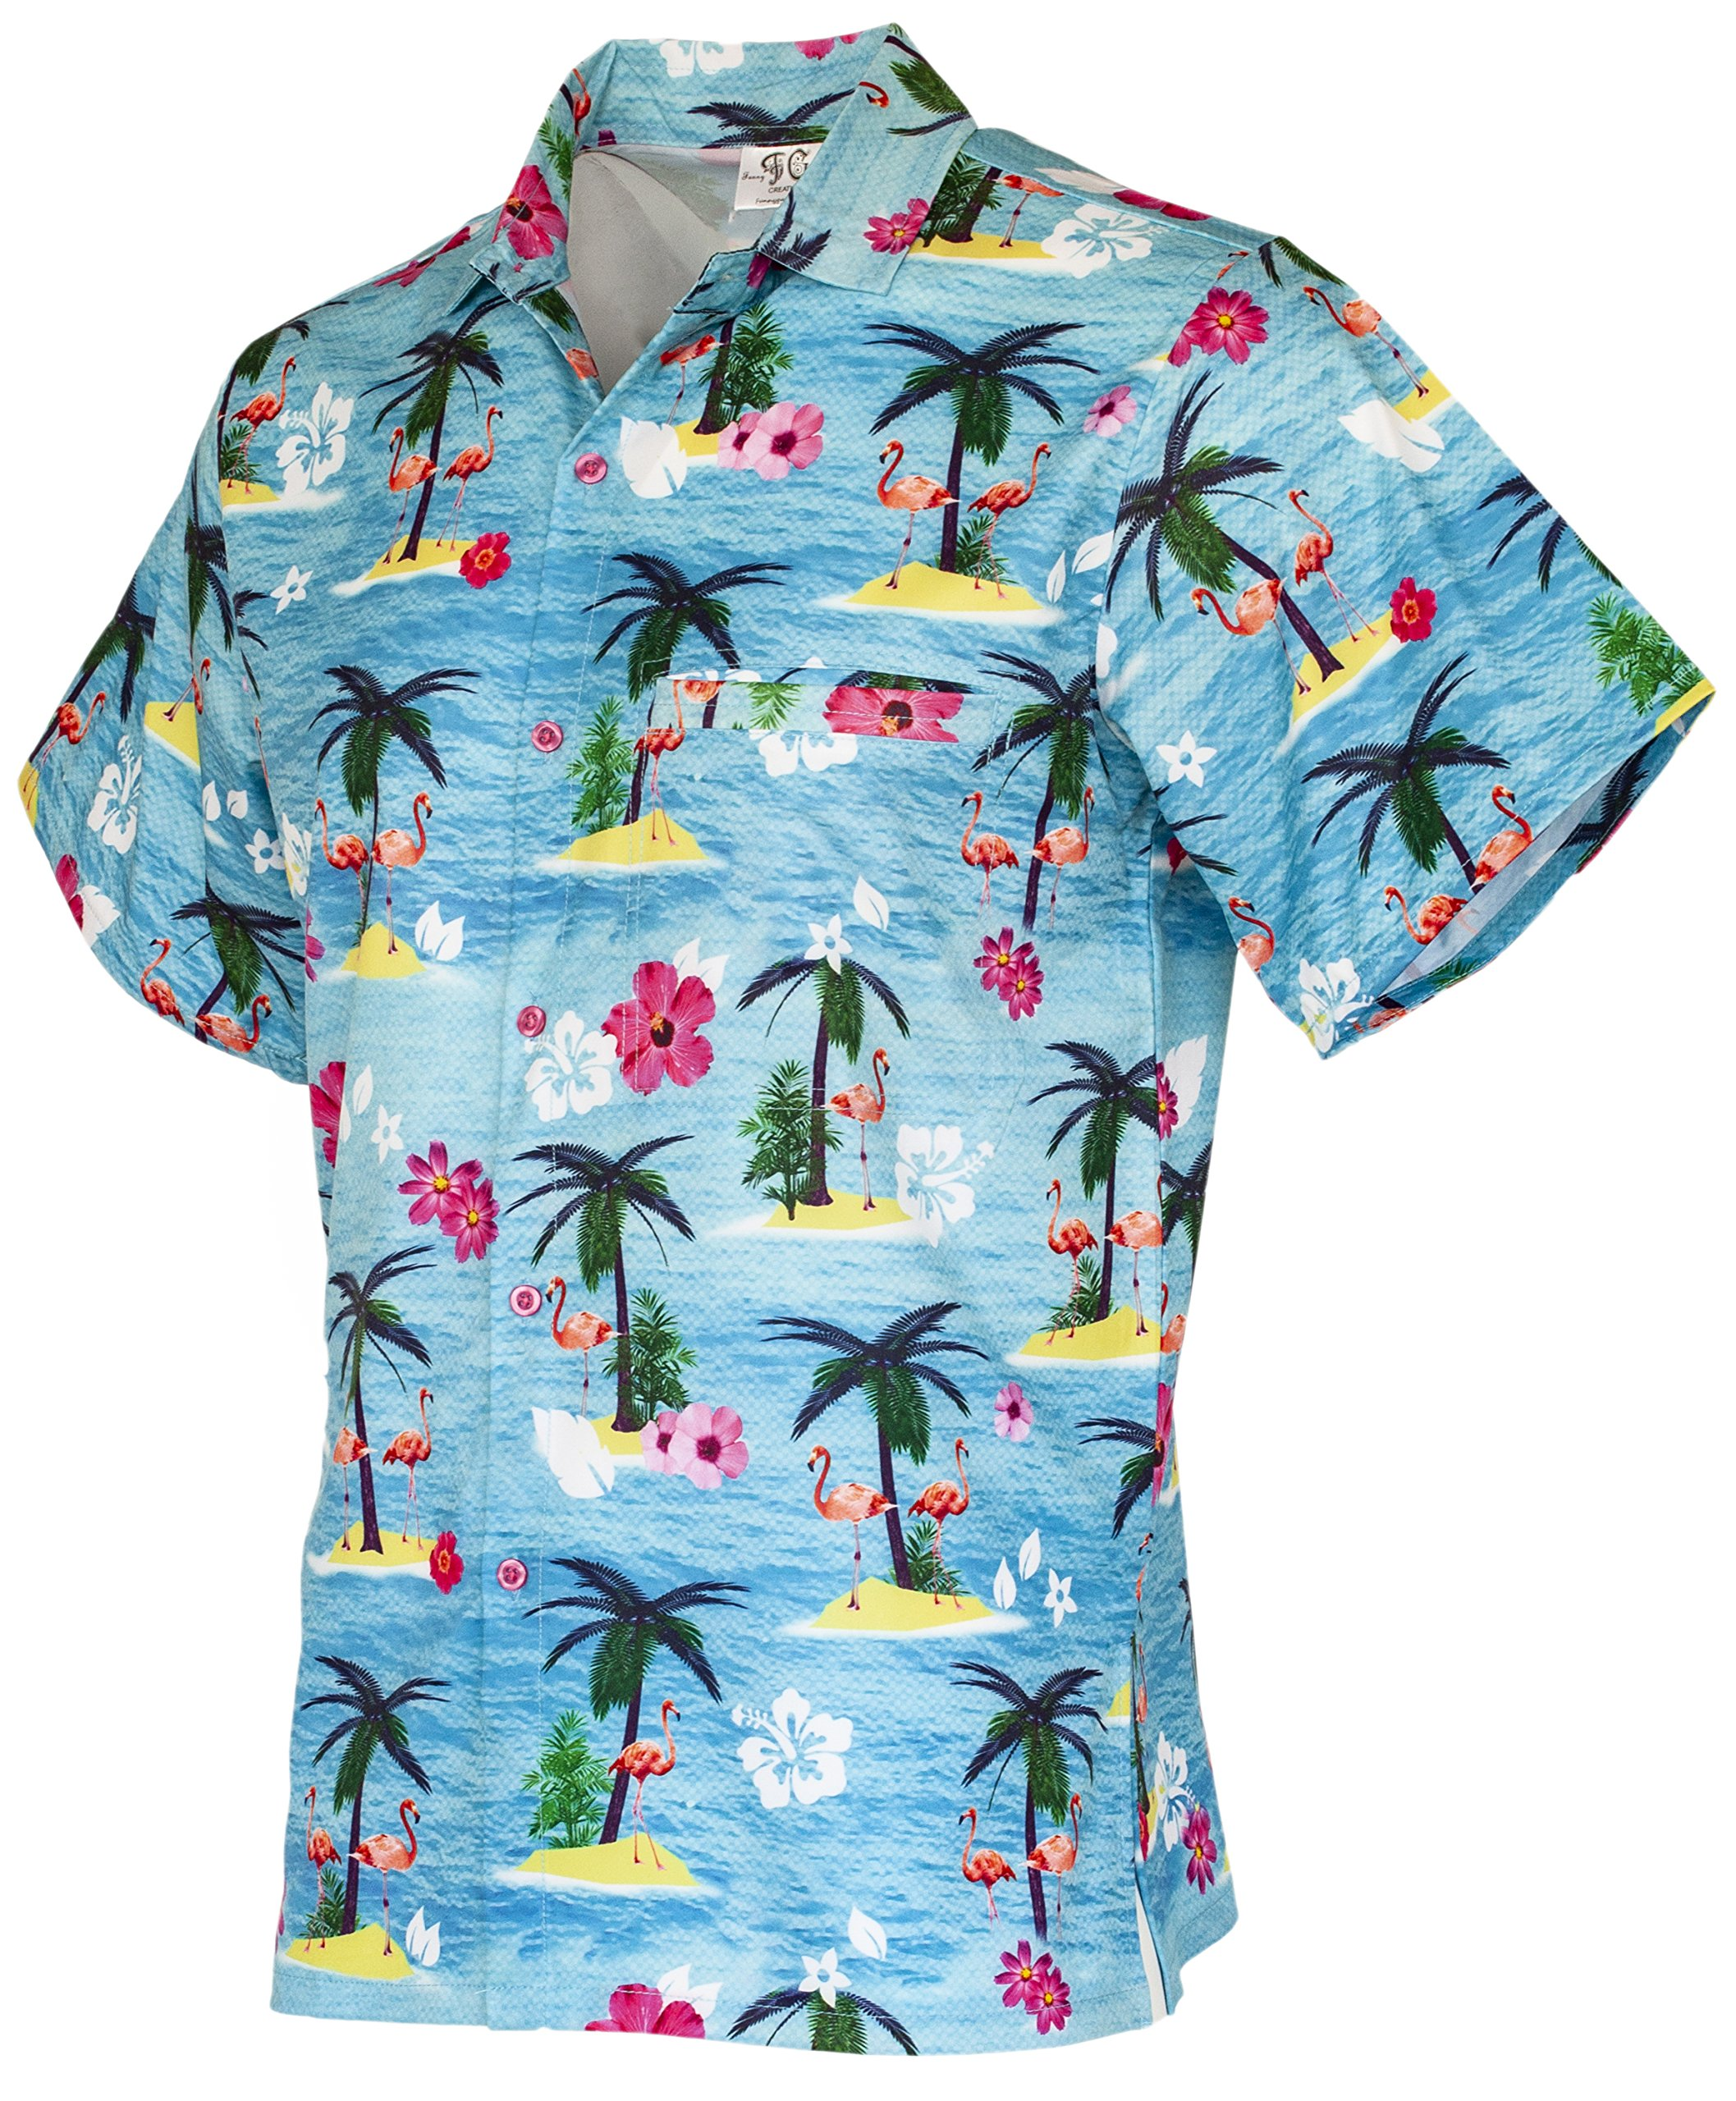 204757a36 Galleon - Funny Guy Mugs Mens Flamingo Hawaiian Print Button Down Short  Sleeve Shirt, 2X-Large